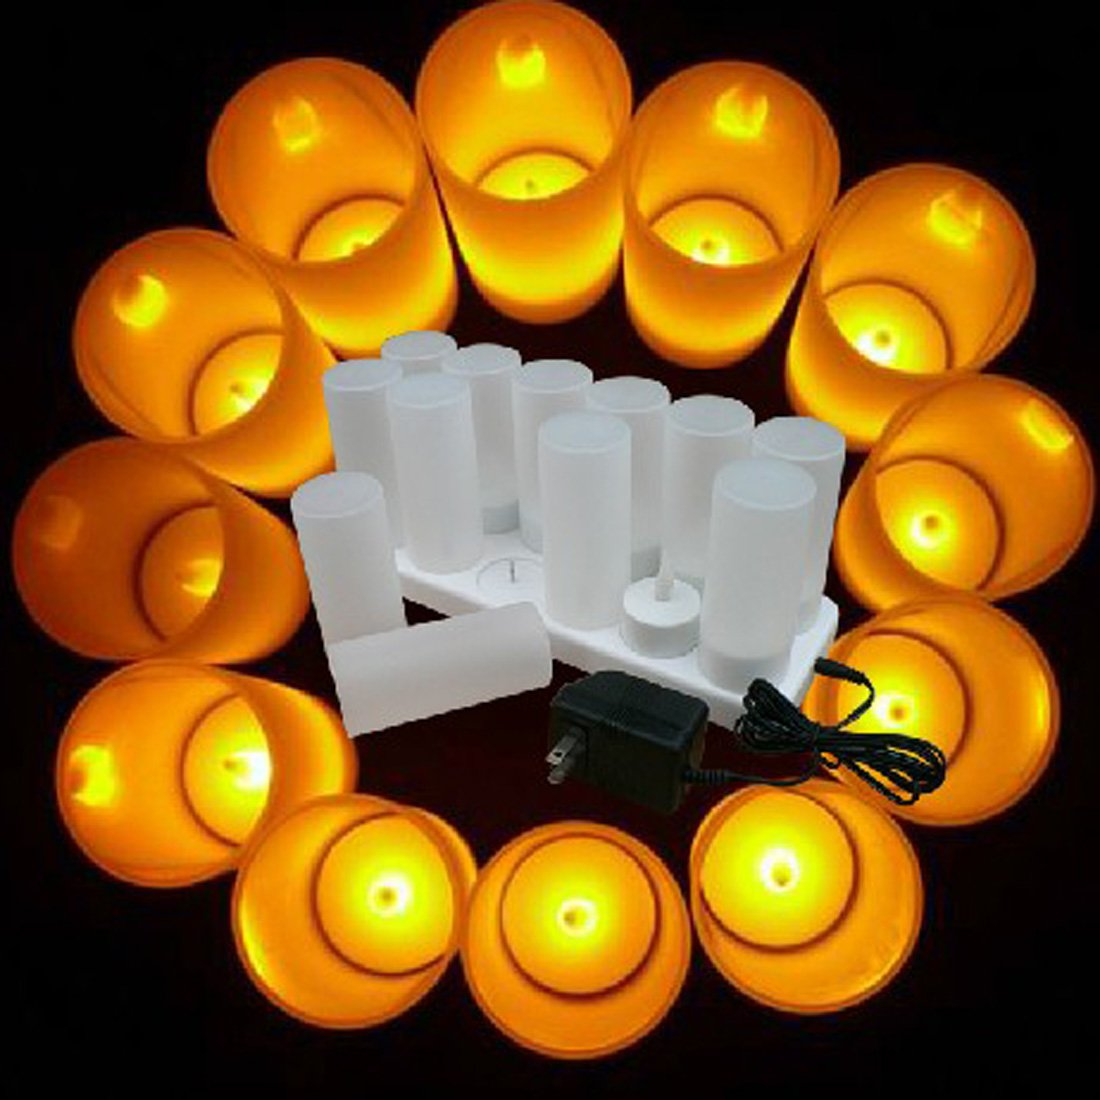 Winterworm Rechargeable Flameless Yellow Flickering Tea Light Candle with Frosted Holder for Xmas Party Wedding Festival Holiday Party Decoration Supplies (Set of 12, With Remote Control) by Winterworm (Image #3)